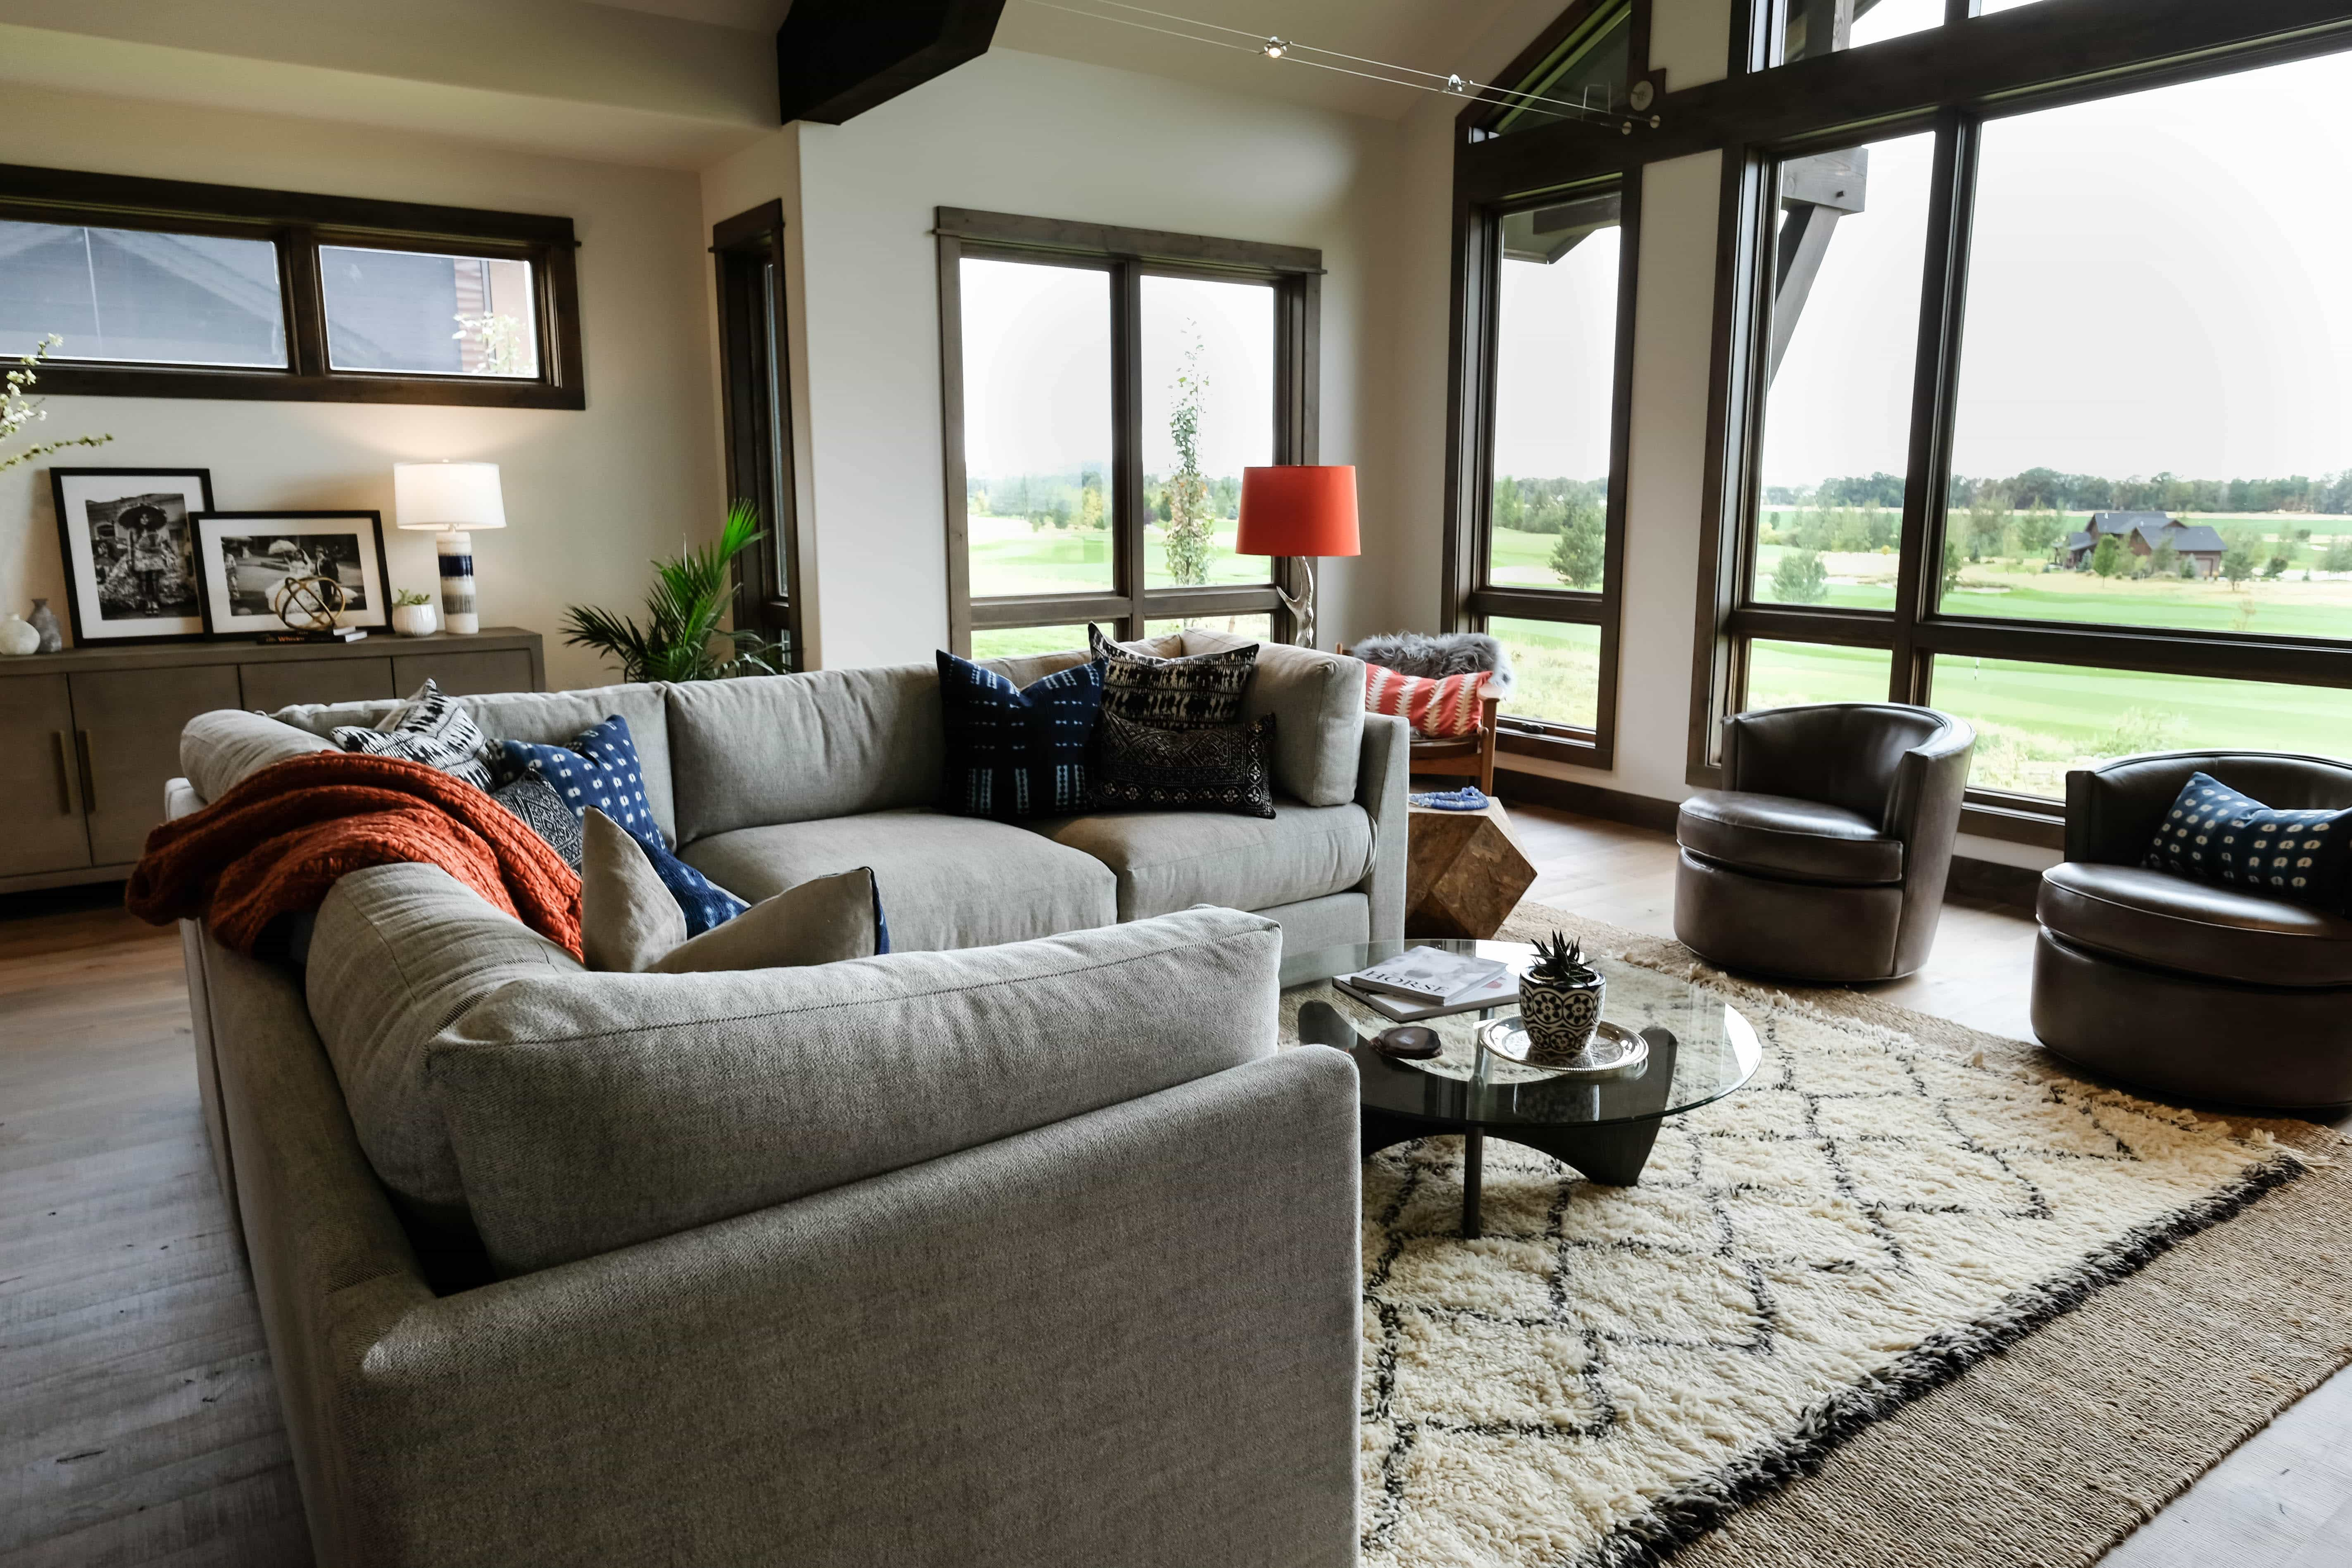 Parade of Homes living room with couch, chairs, and rug